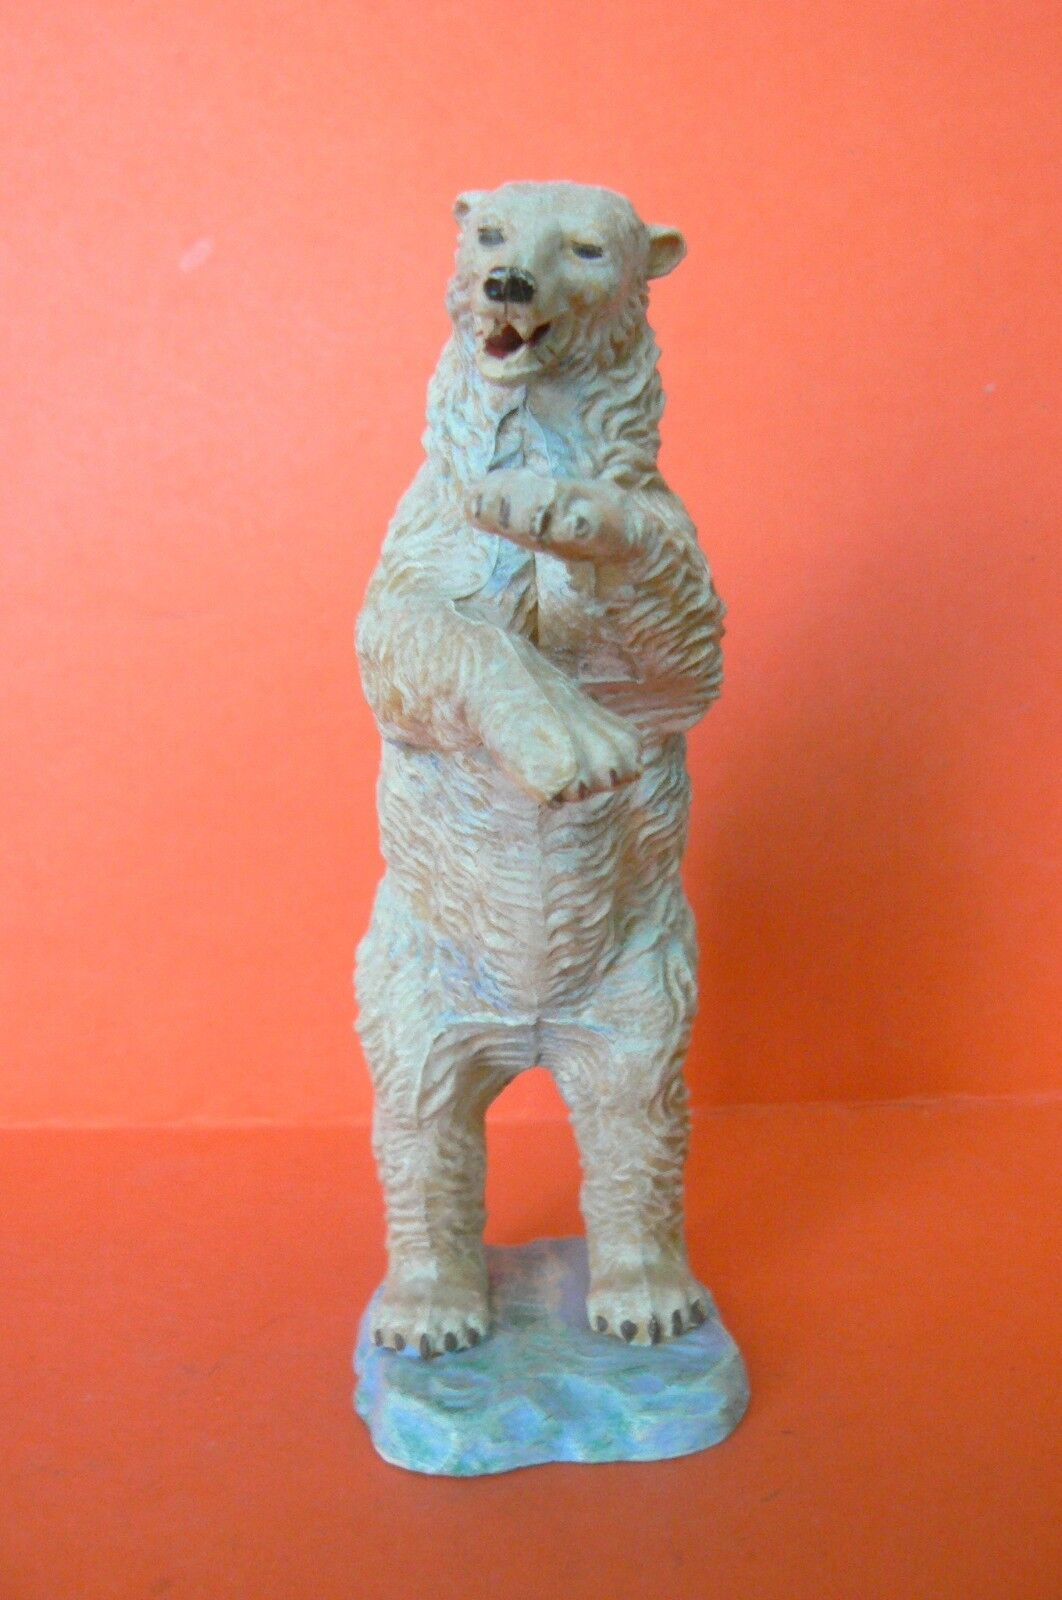 ELASTOLIN   CIRCUS OR ANIMALS SAUVAGES   GRAND BEAR POLOLAIRE STANDING